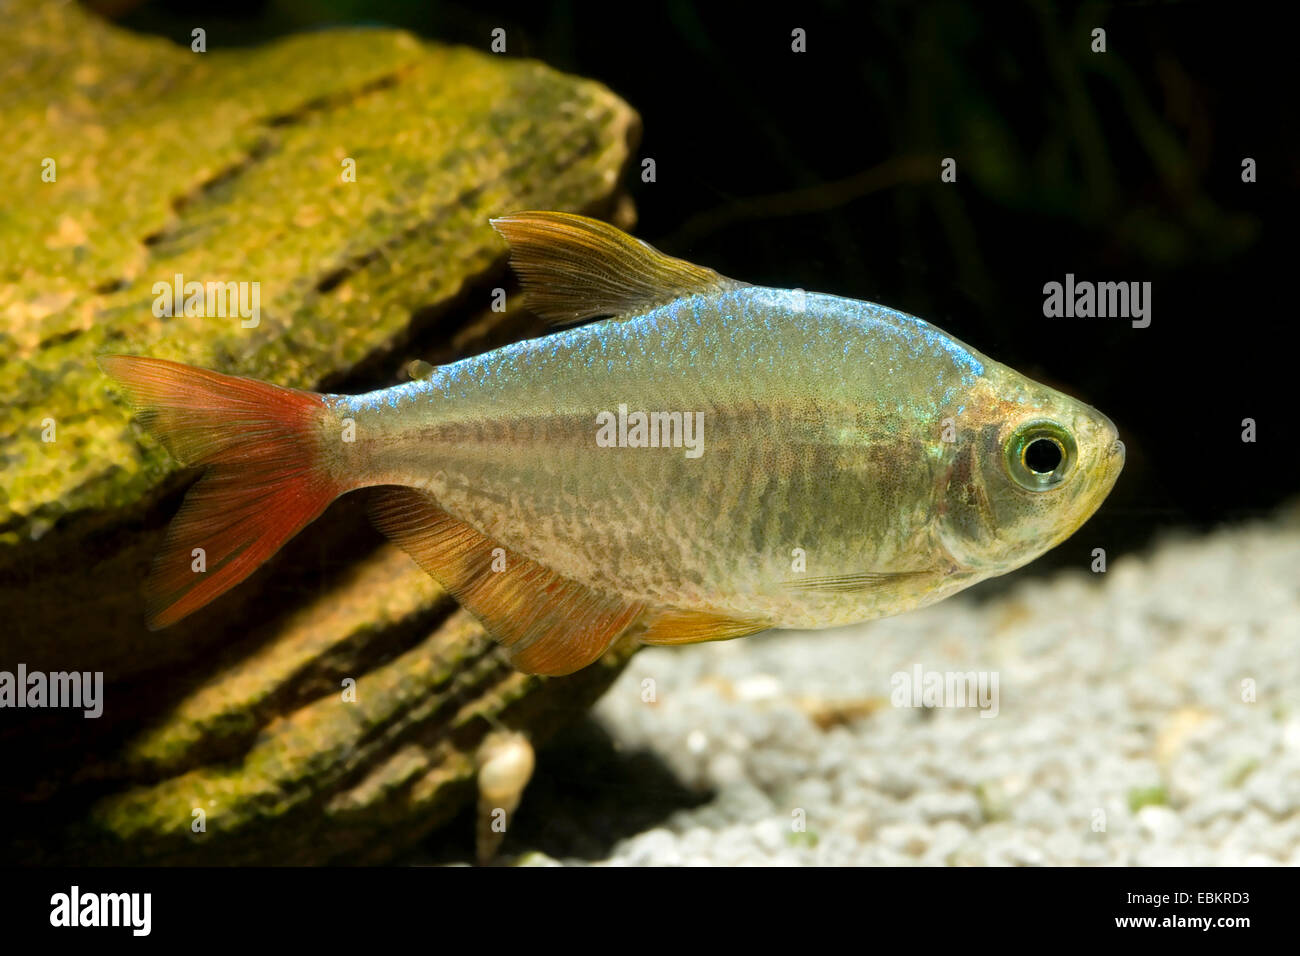 Columbian tetra (Hyphessobrycon columbianus), swimming Stock Photo